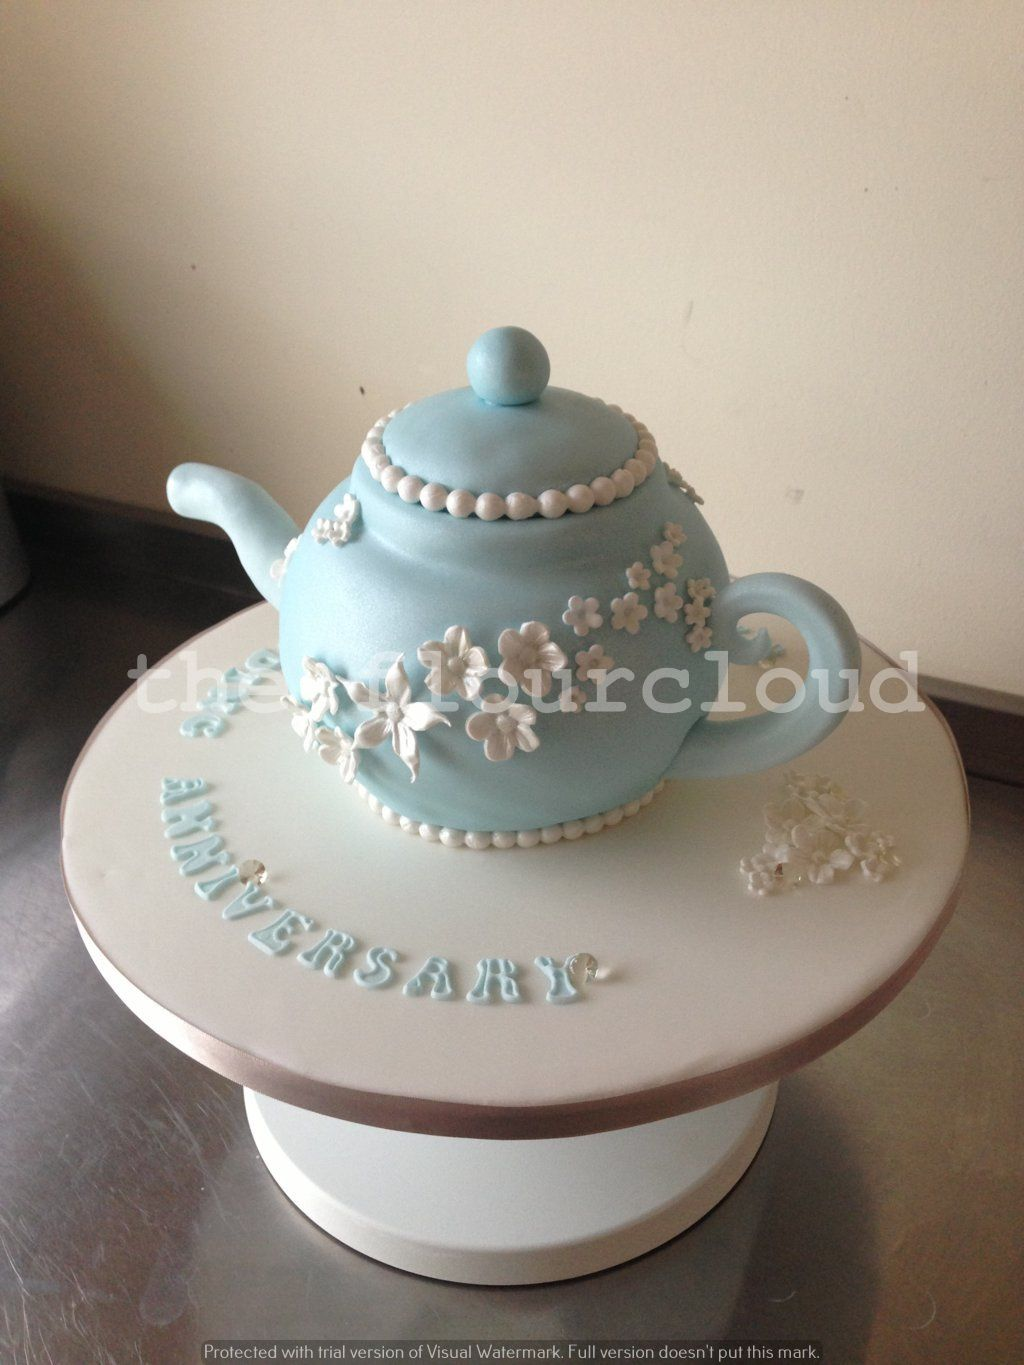 A delicate blue teapot with beautiful white flowers as an